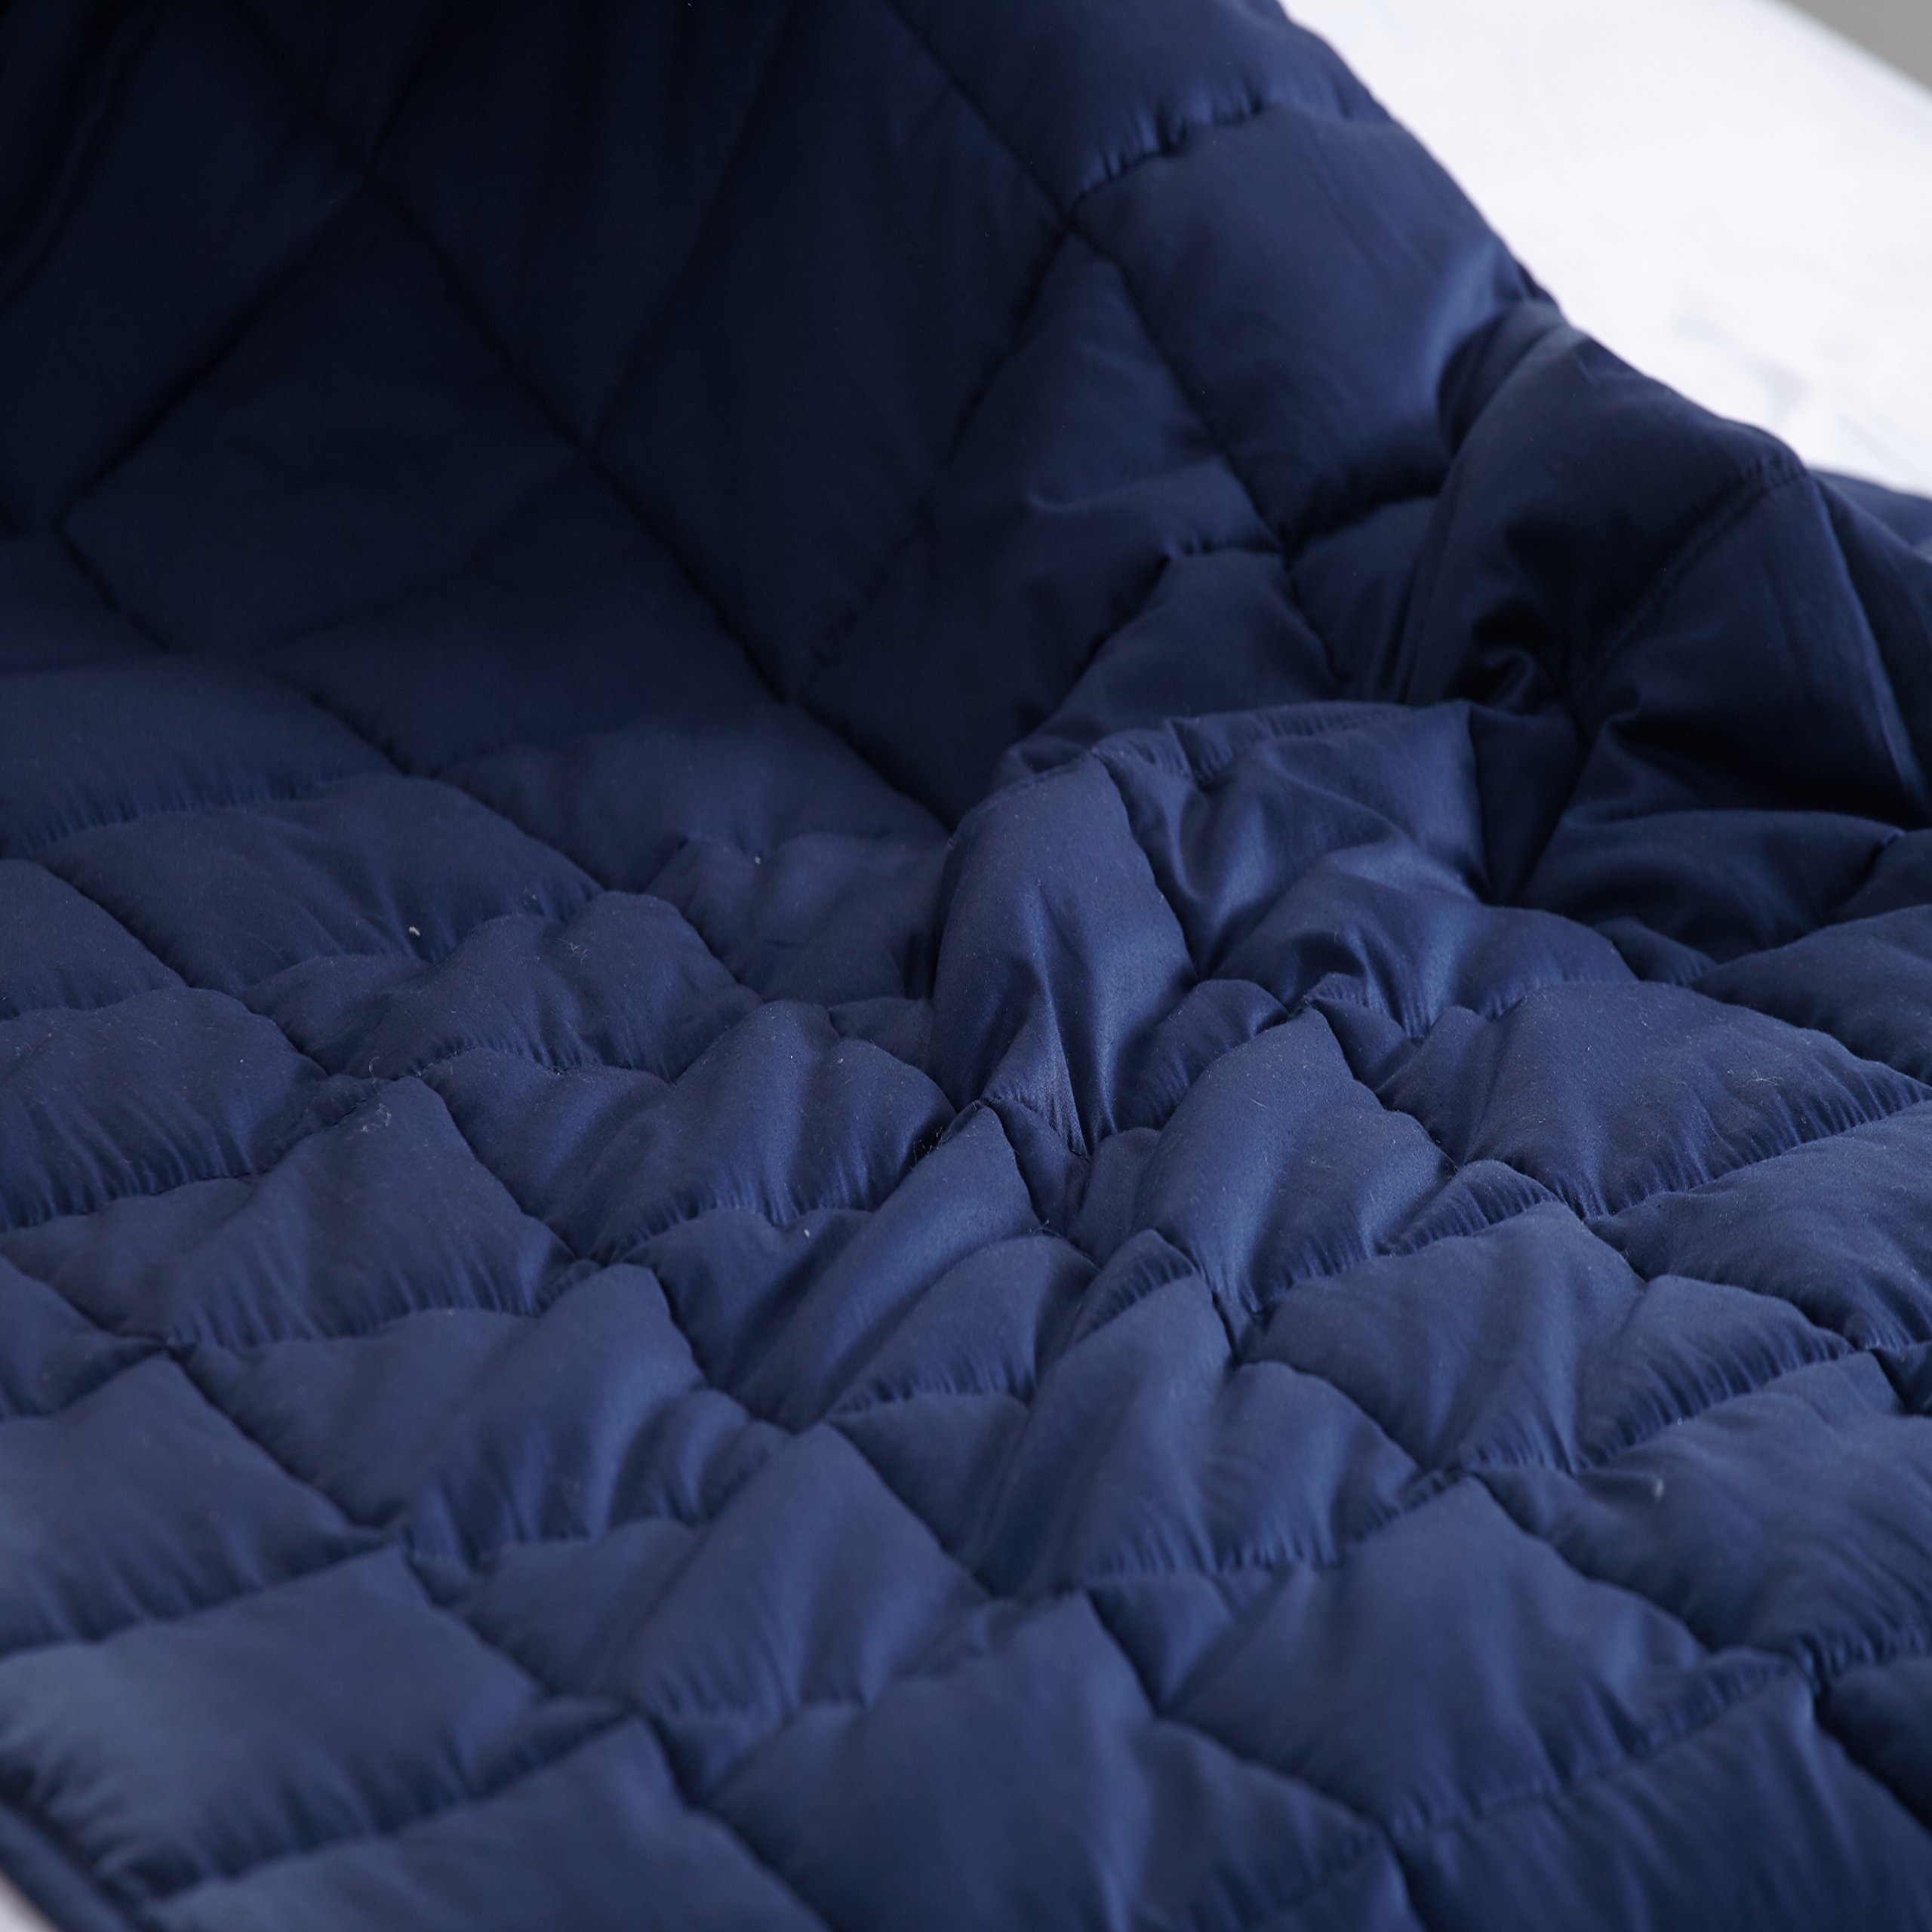 Weighted Blanket by Flasleep,Queen Size,Gravity Sensory Heavy Blanket for Children Adults. Great for Anxiety, ADHD, Autism, OCD, and Sensory Processing Disorder,60''x80'' 20 lb Navy